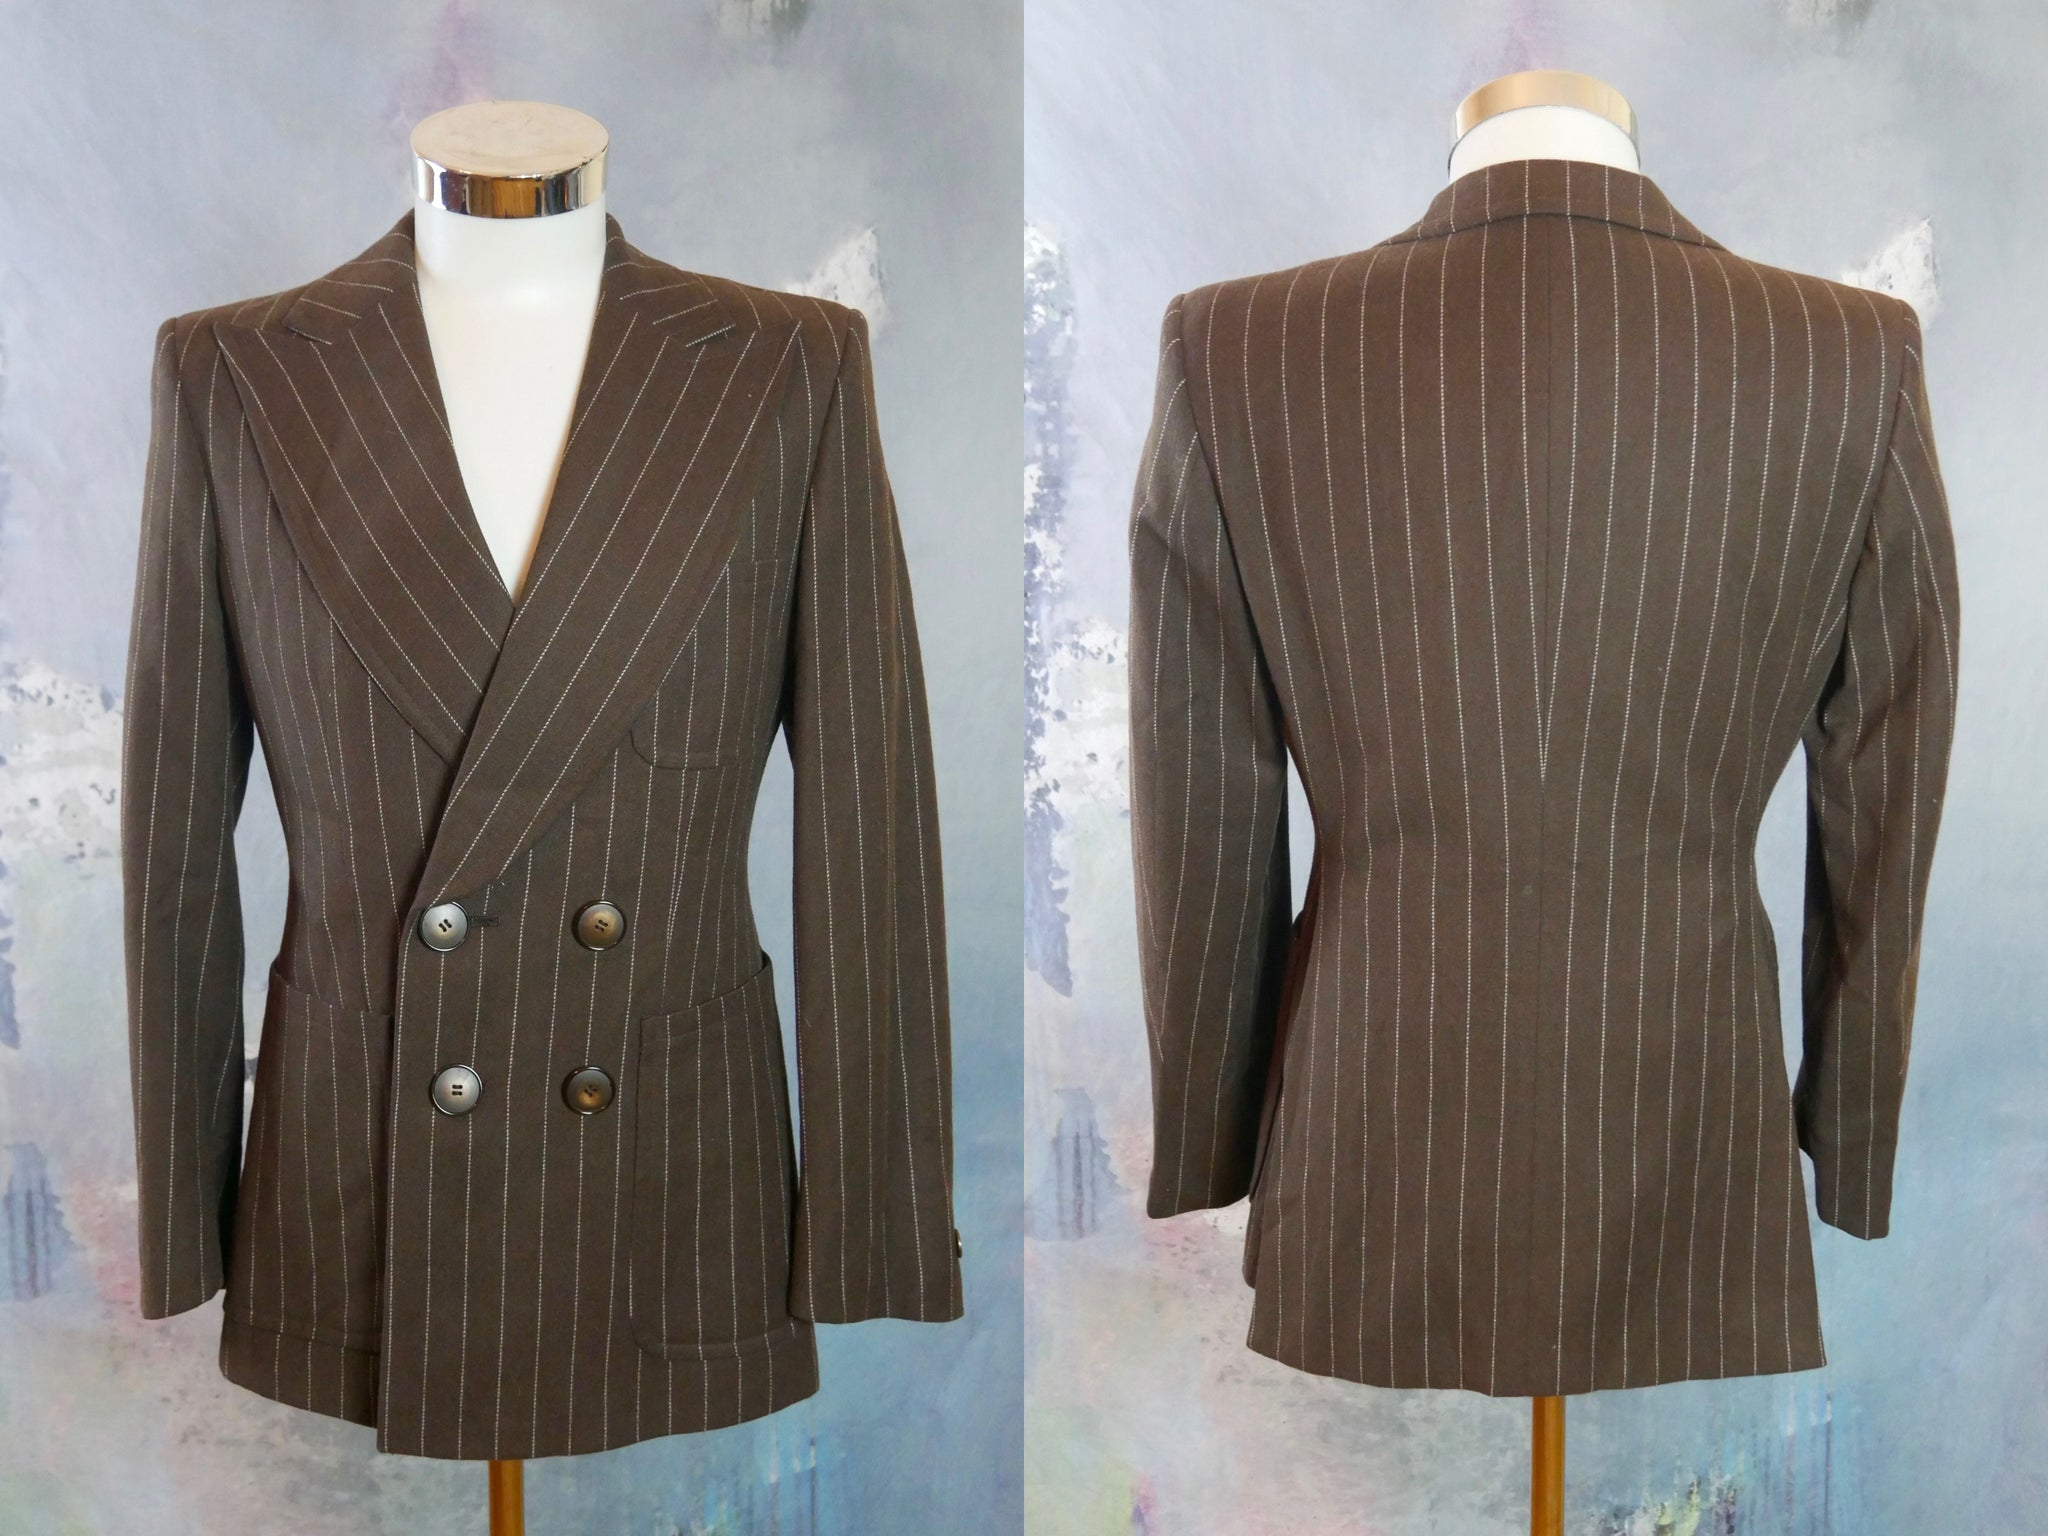 1970s Double-Breasted Pinstripe Blazer, European Vintage Brown Wool Blazer with Super Wide Peak Lapels, Made in Finland: Size 36 US/UK - DownShifting Vintage Menswear